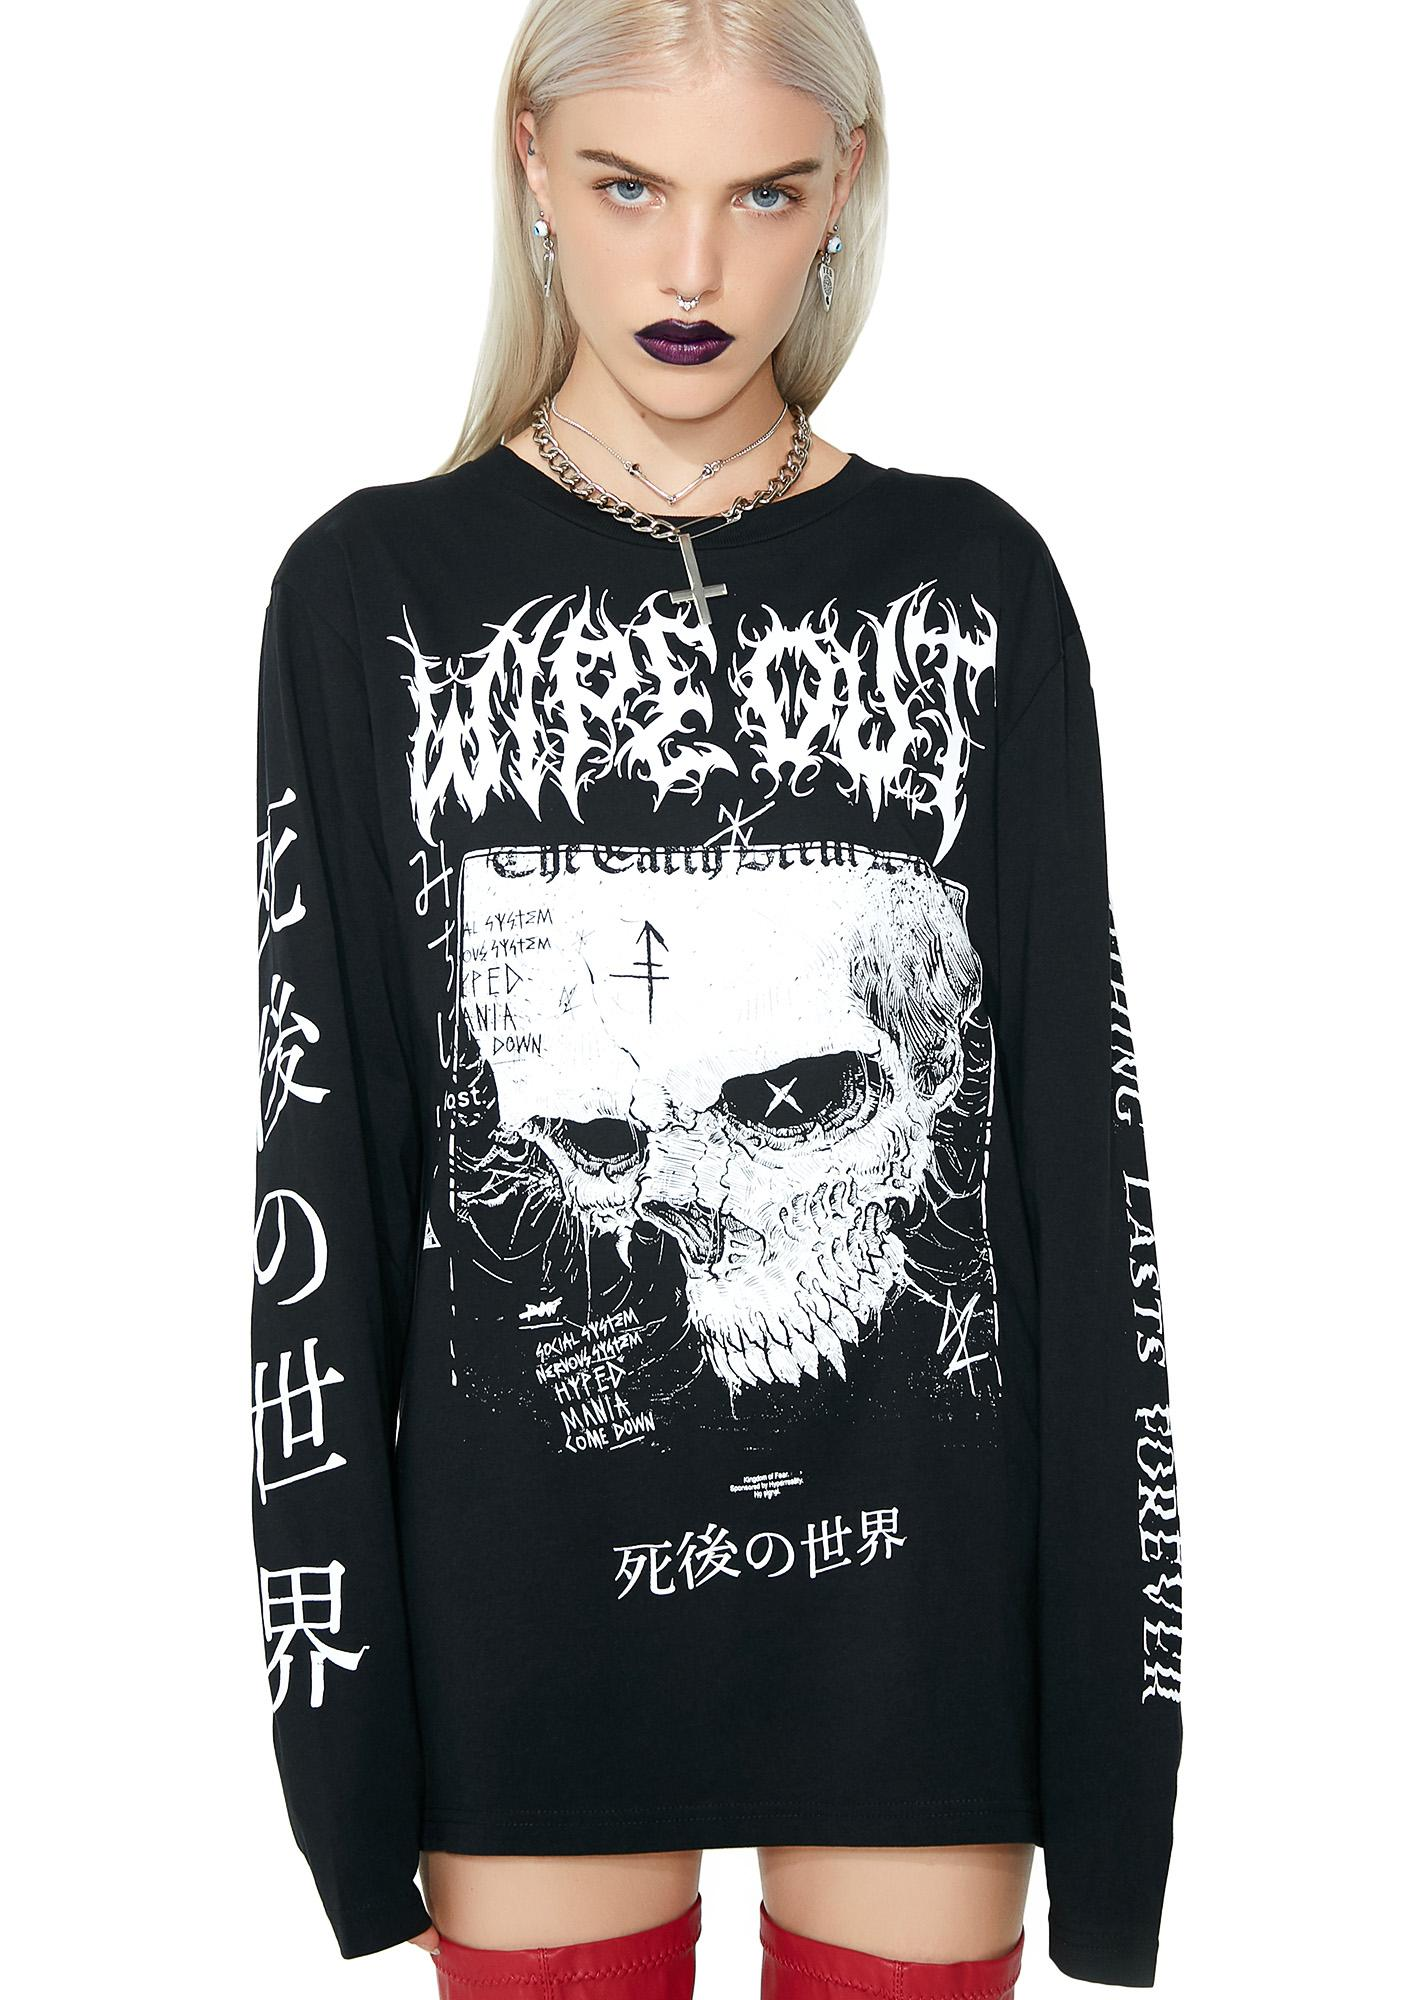 Disturbia Wipe Out Long Sleeve